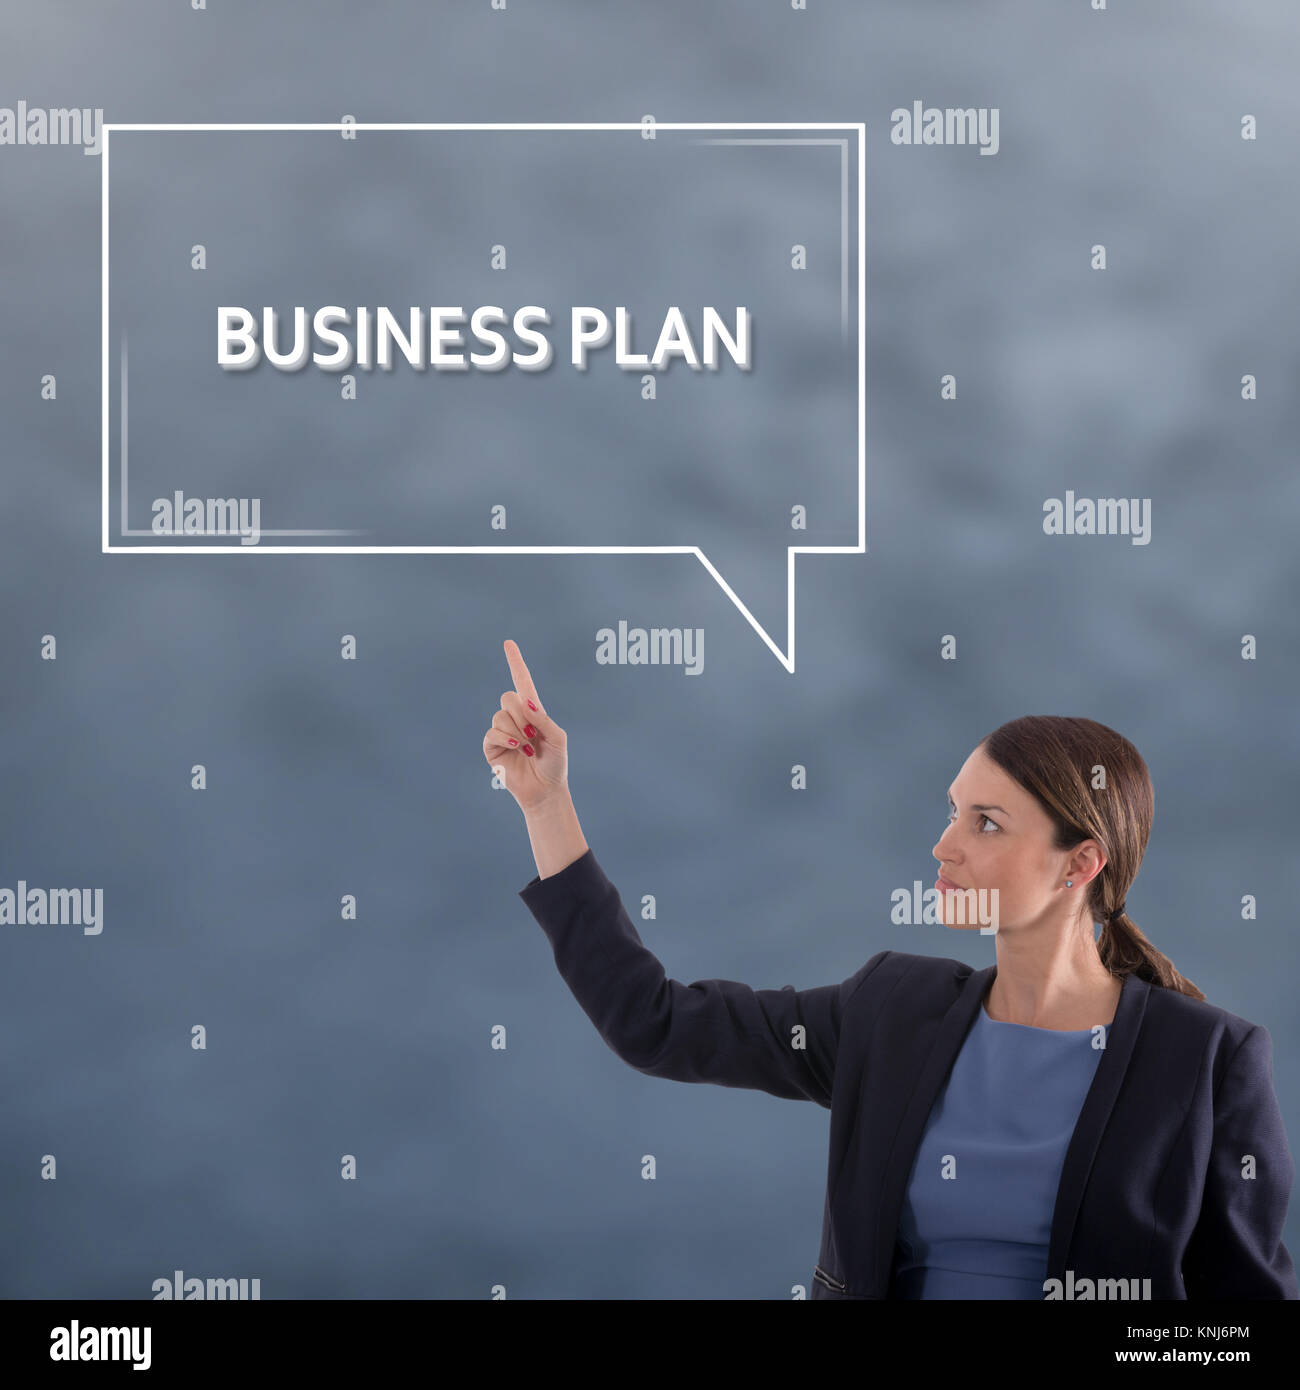 BUSINESS PLAN Business Concept. Business Woman Graphic Concept - Stock Image